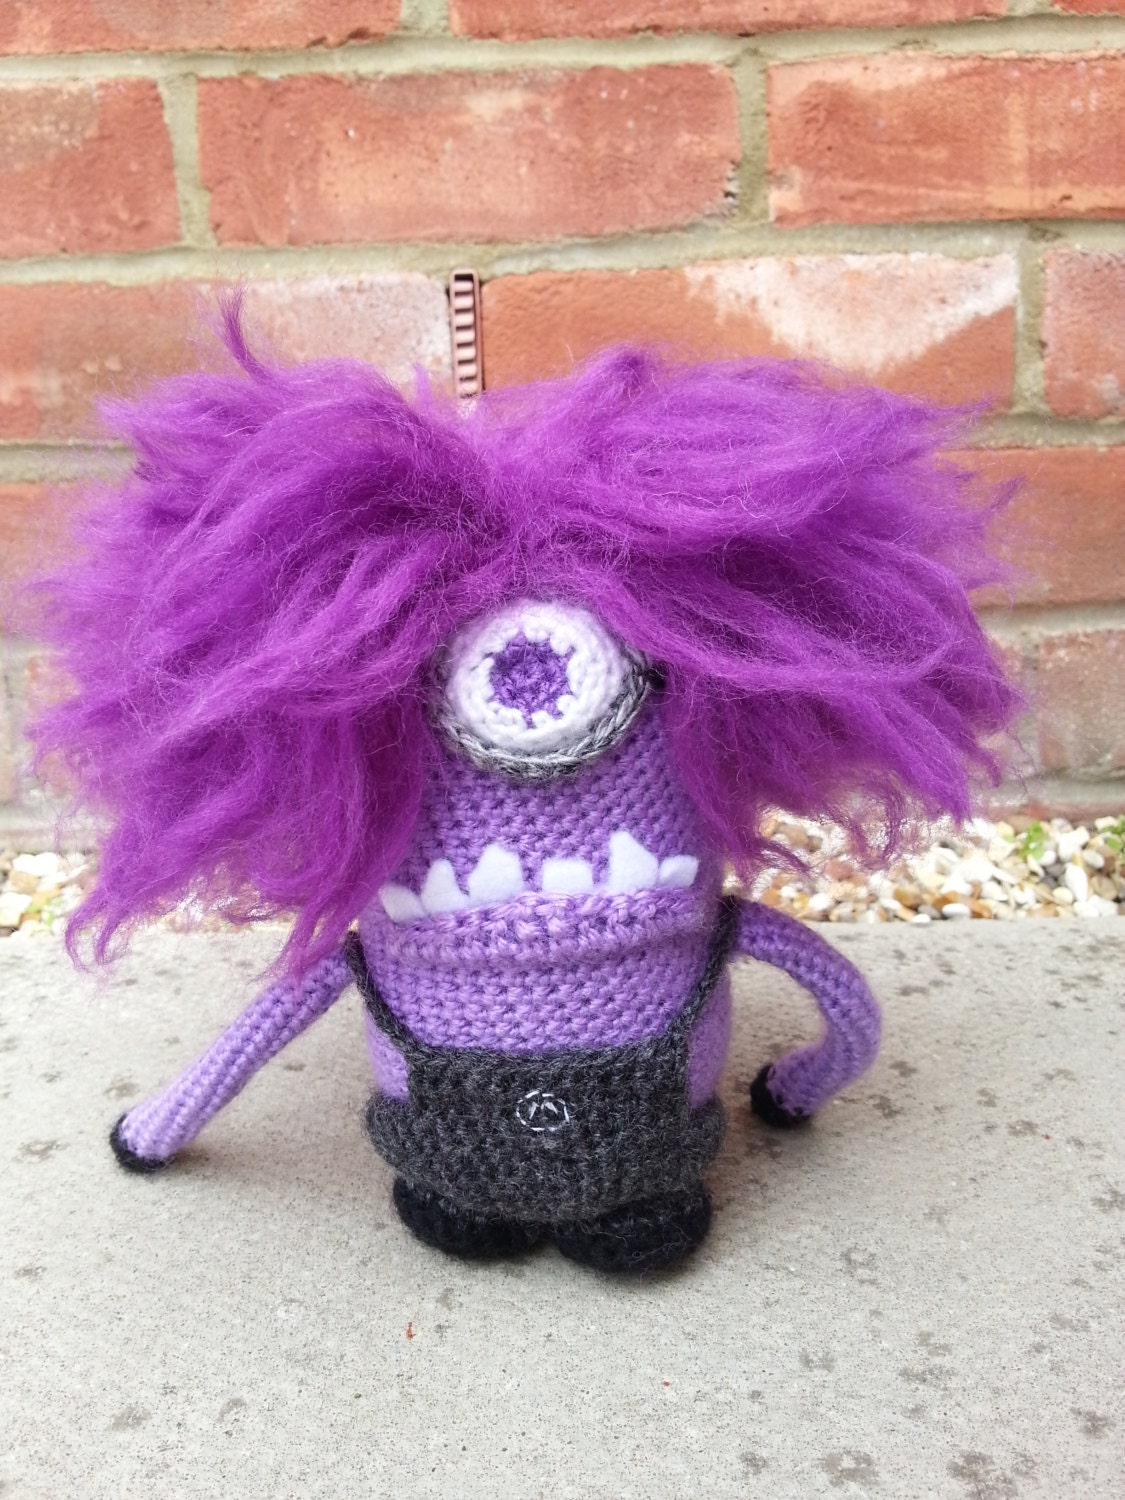 Amigurumi Minion Etsy : Evil Purple Minion Amigurumi Crochet Pattern by LoopyLousLoops